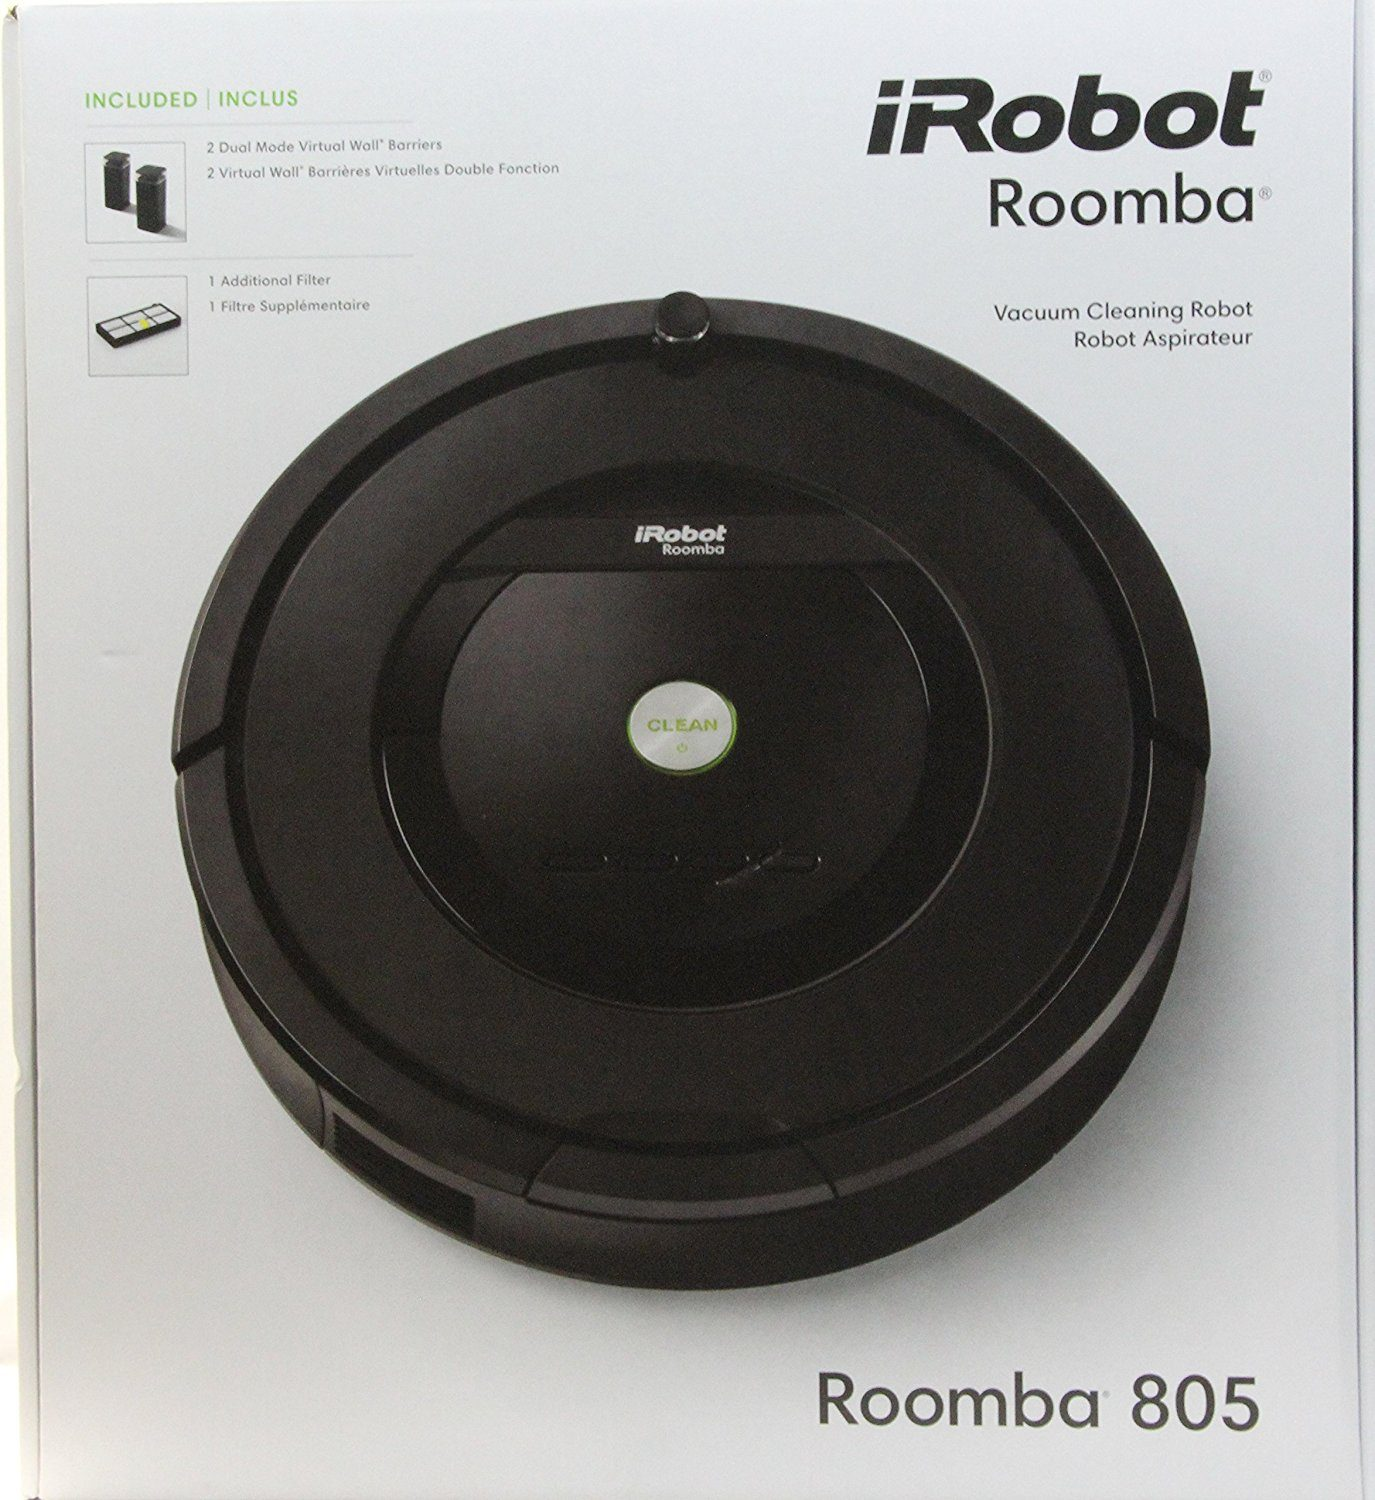 irobot roomba 805 vacuum cleaner review